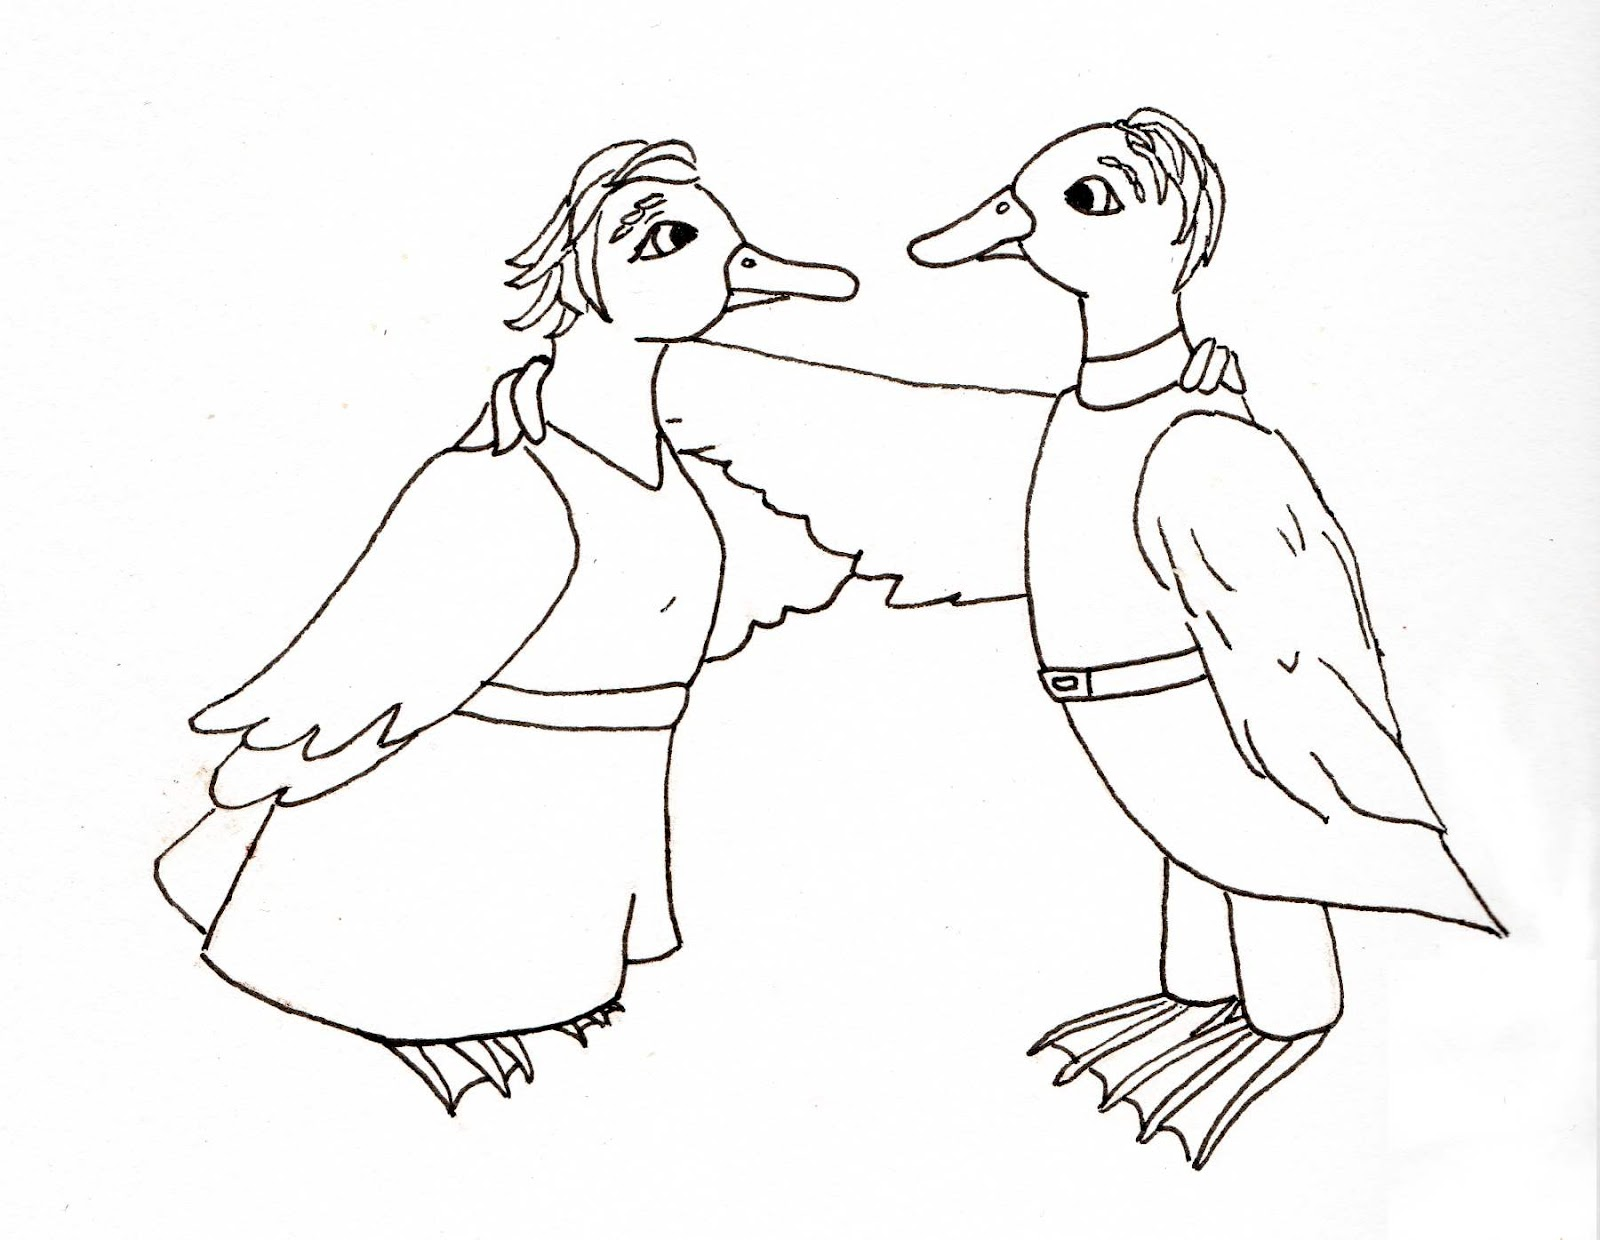 Dani Duck Artist Obscure Line Drawing The Ducks